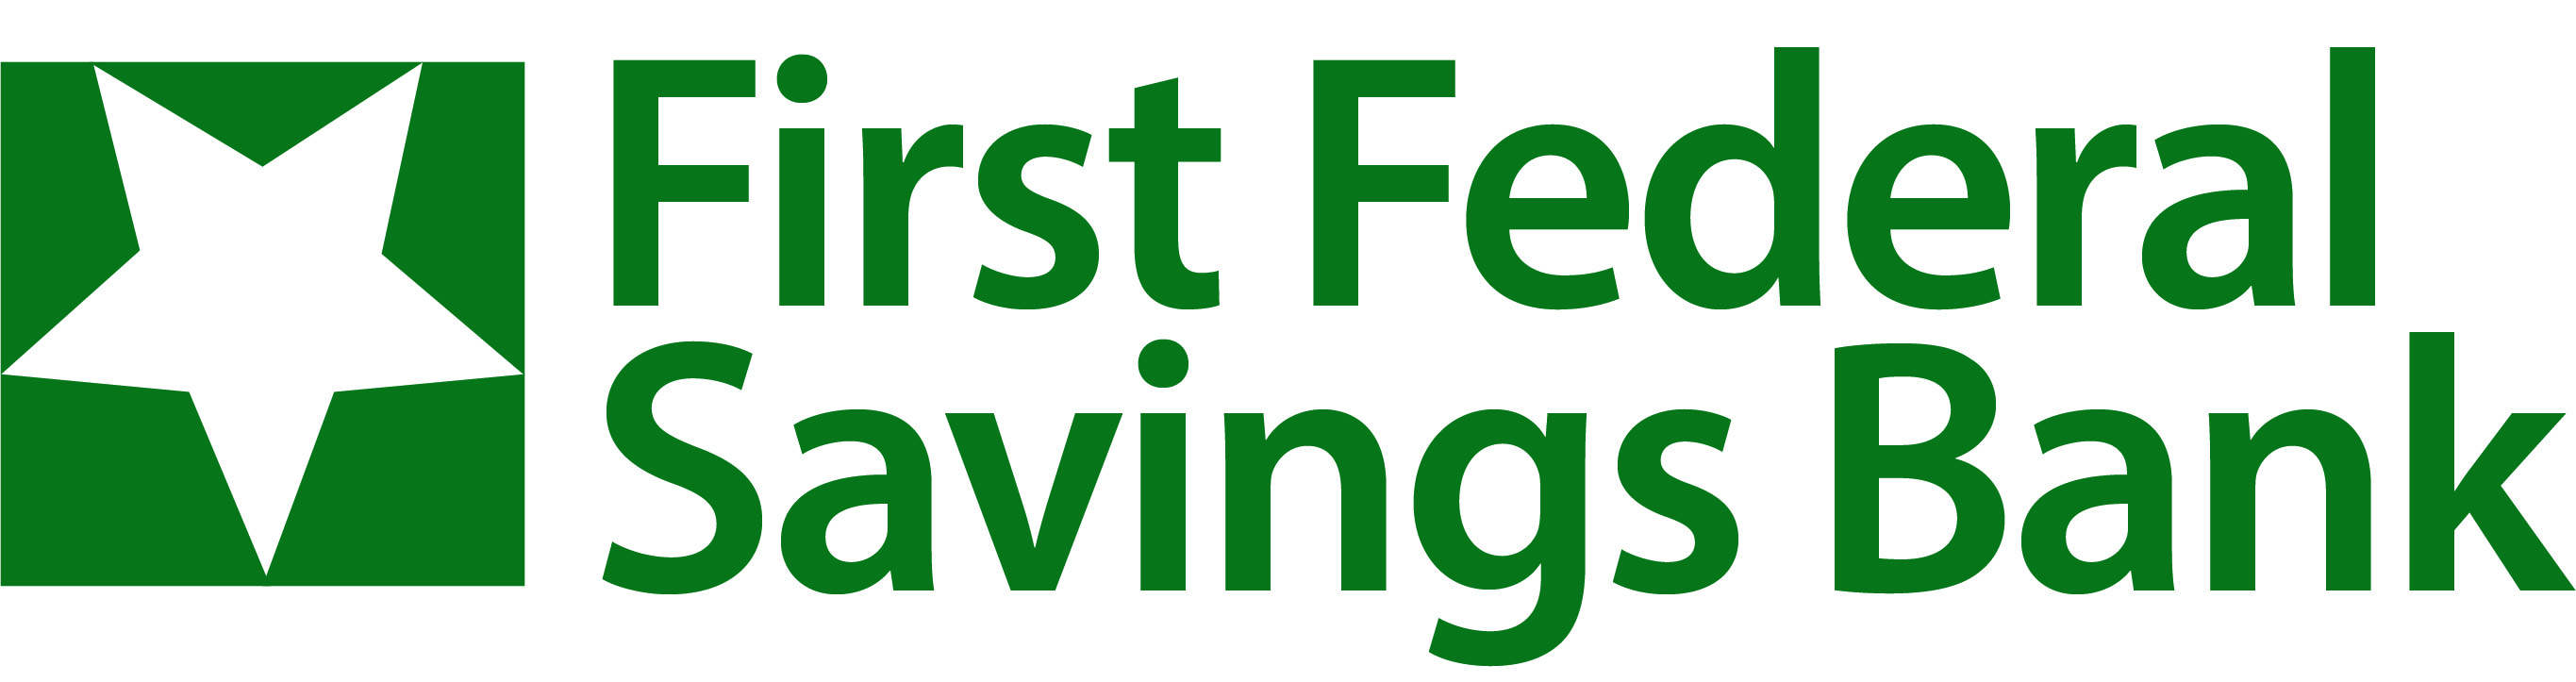 First Federal Savings Bank Logo